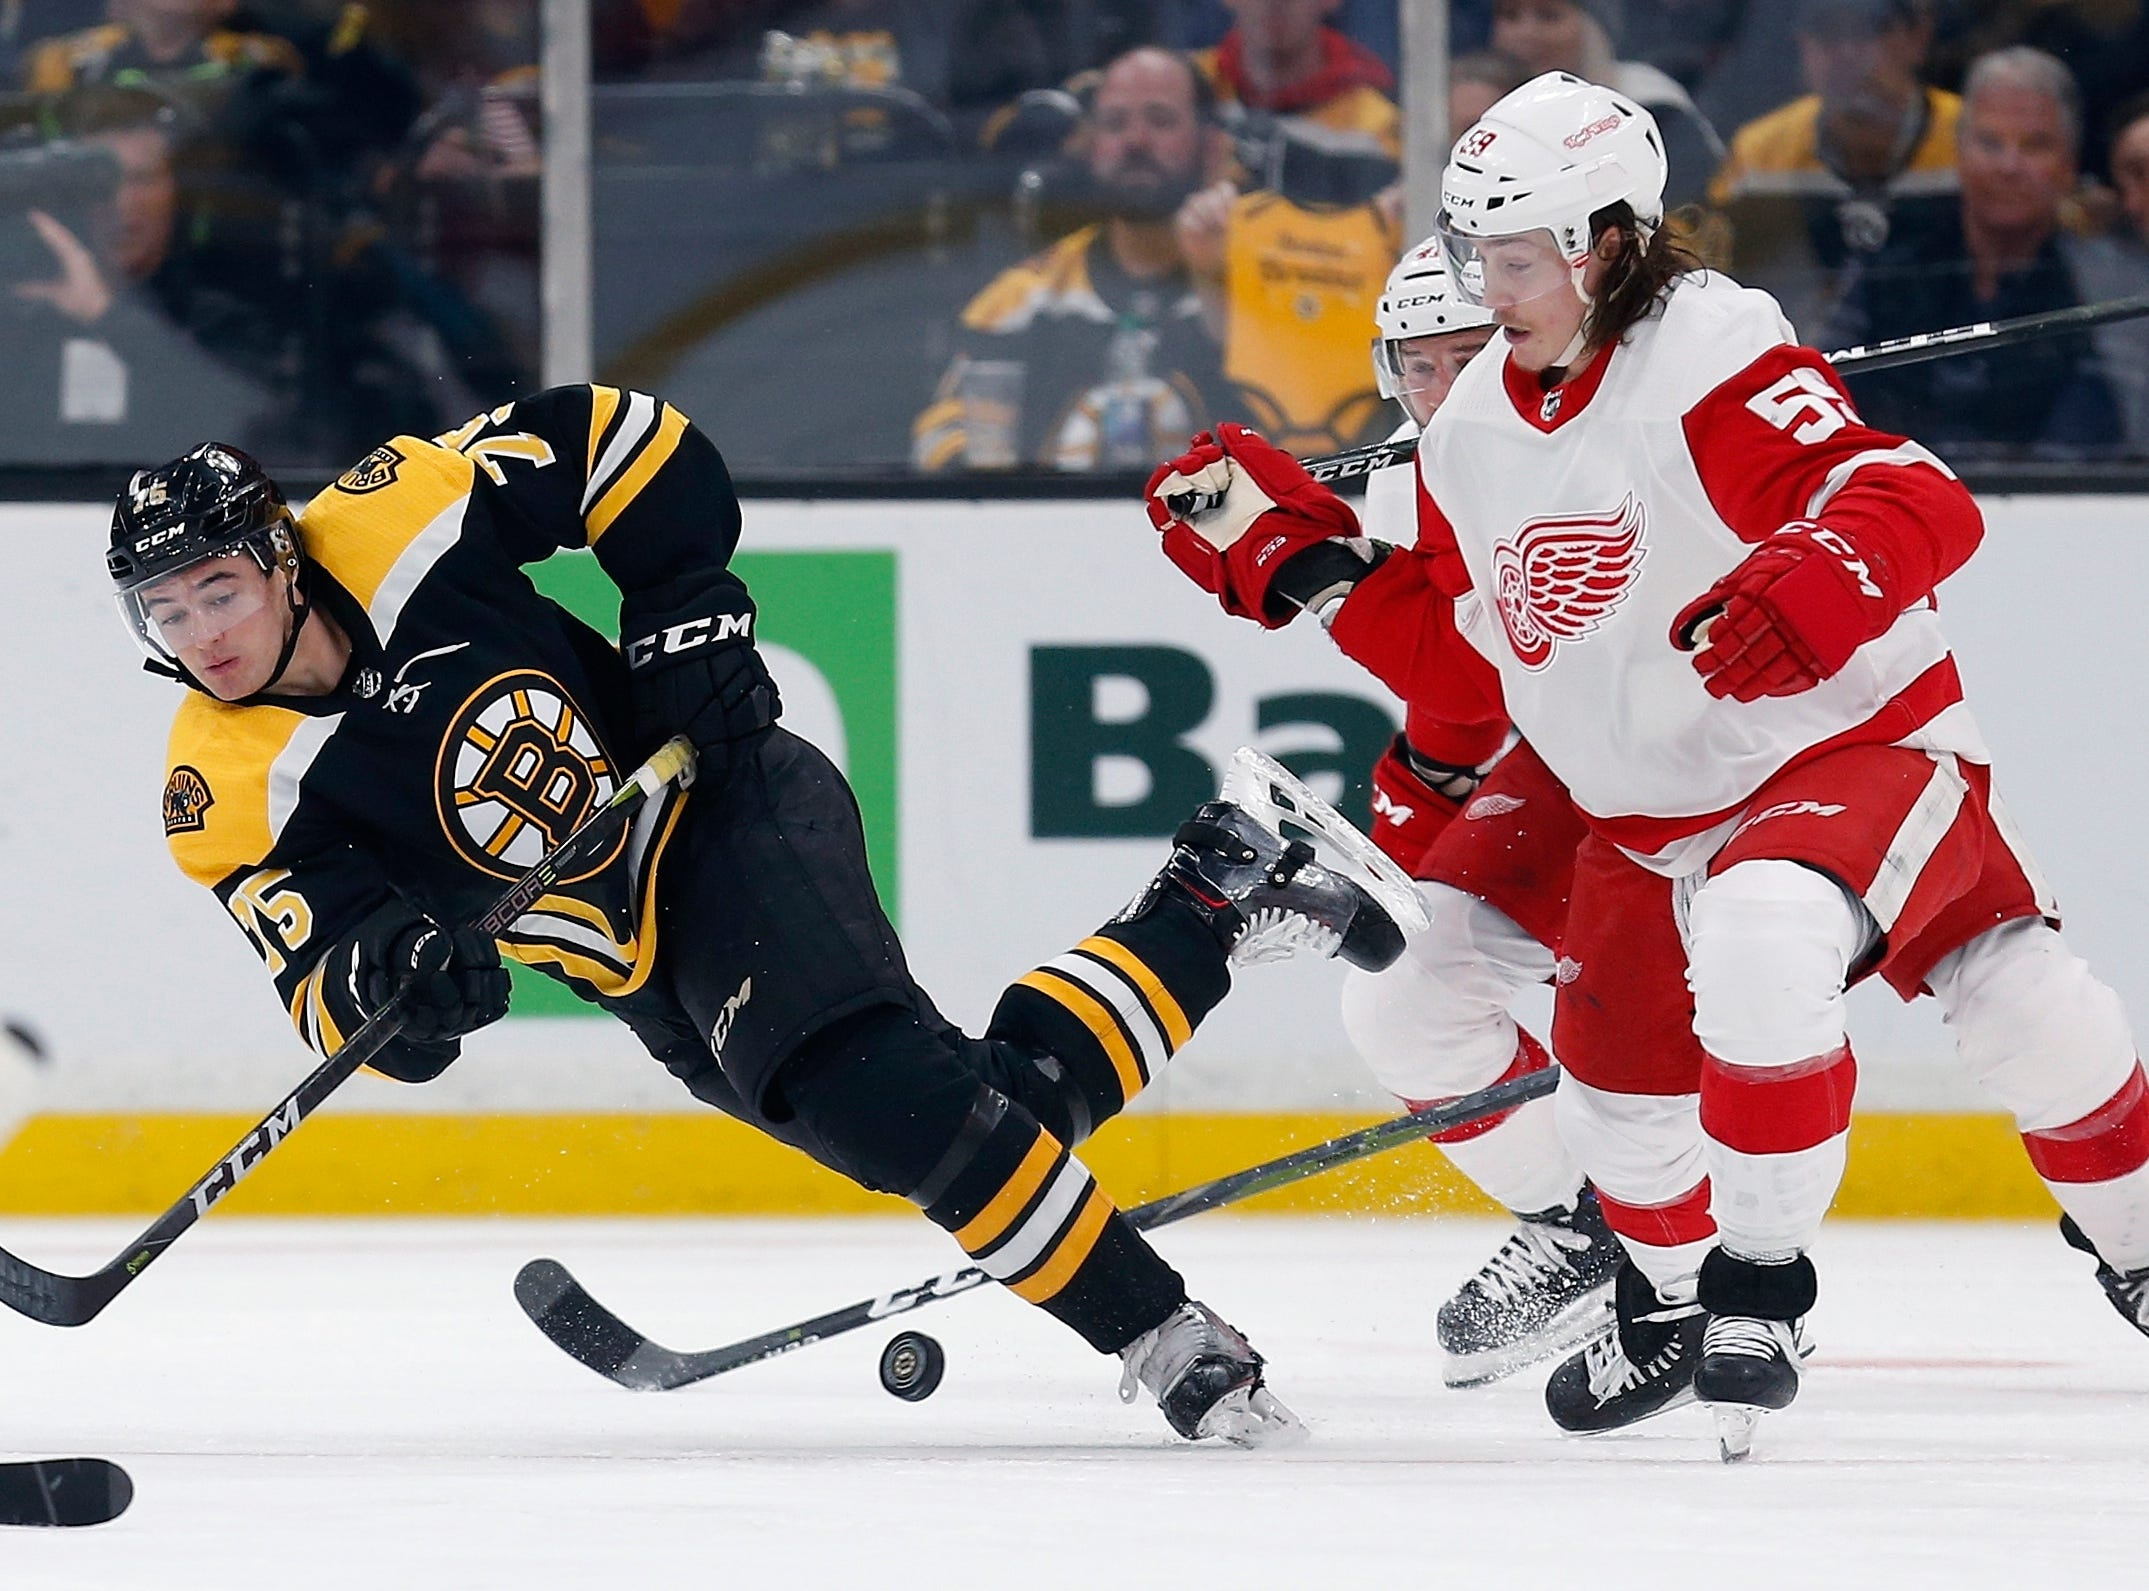 Boston Bruins' Connor Clifton (75) and Detroit Red Wings' Tyler Bertuzzi (59) battle for the puck during the second period.